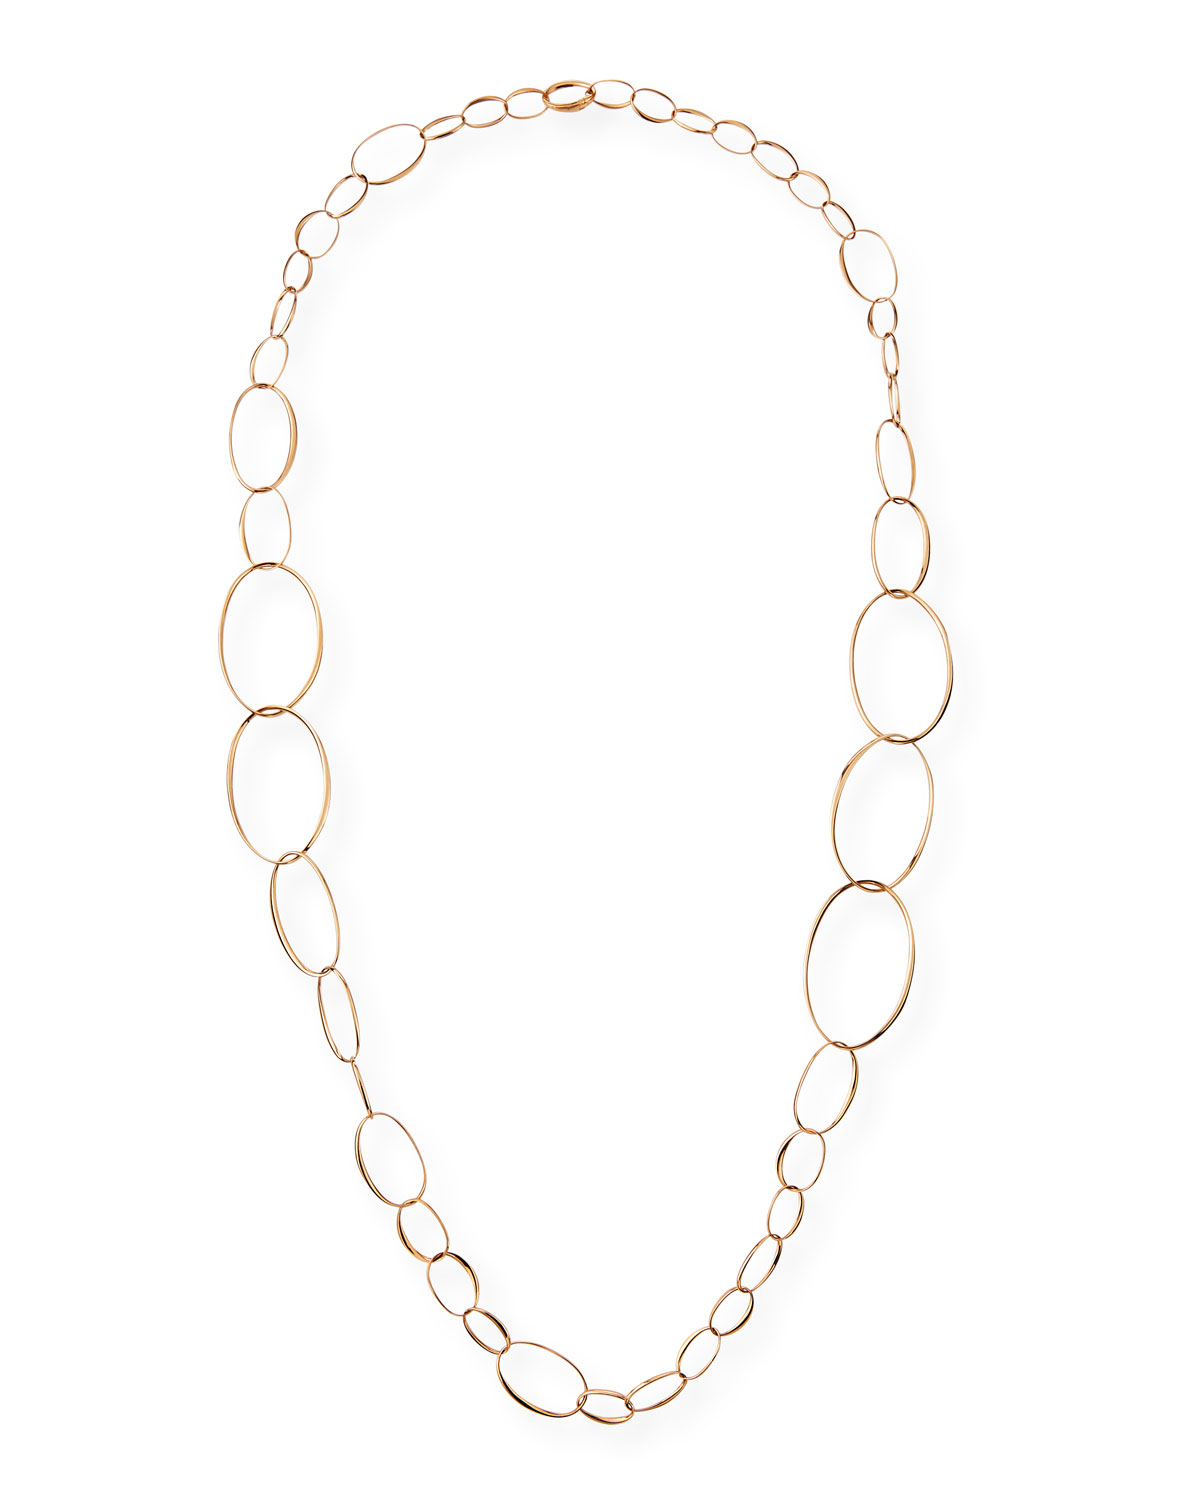 Pomellato 18k Rose Gold Graduated Link Necklace, 43""